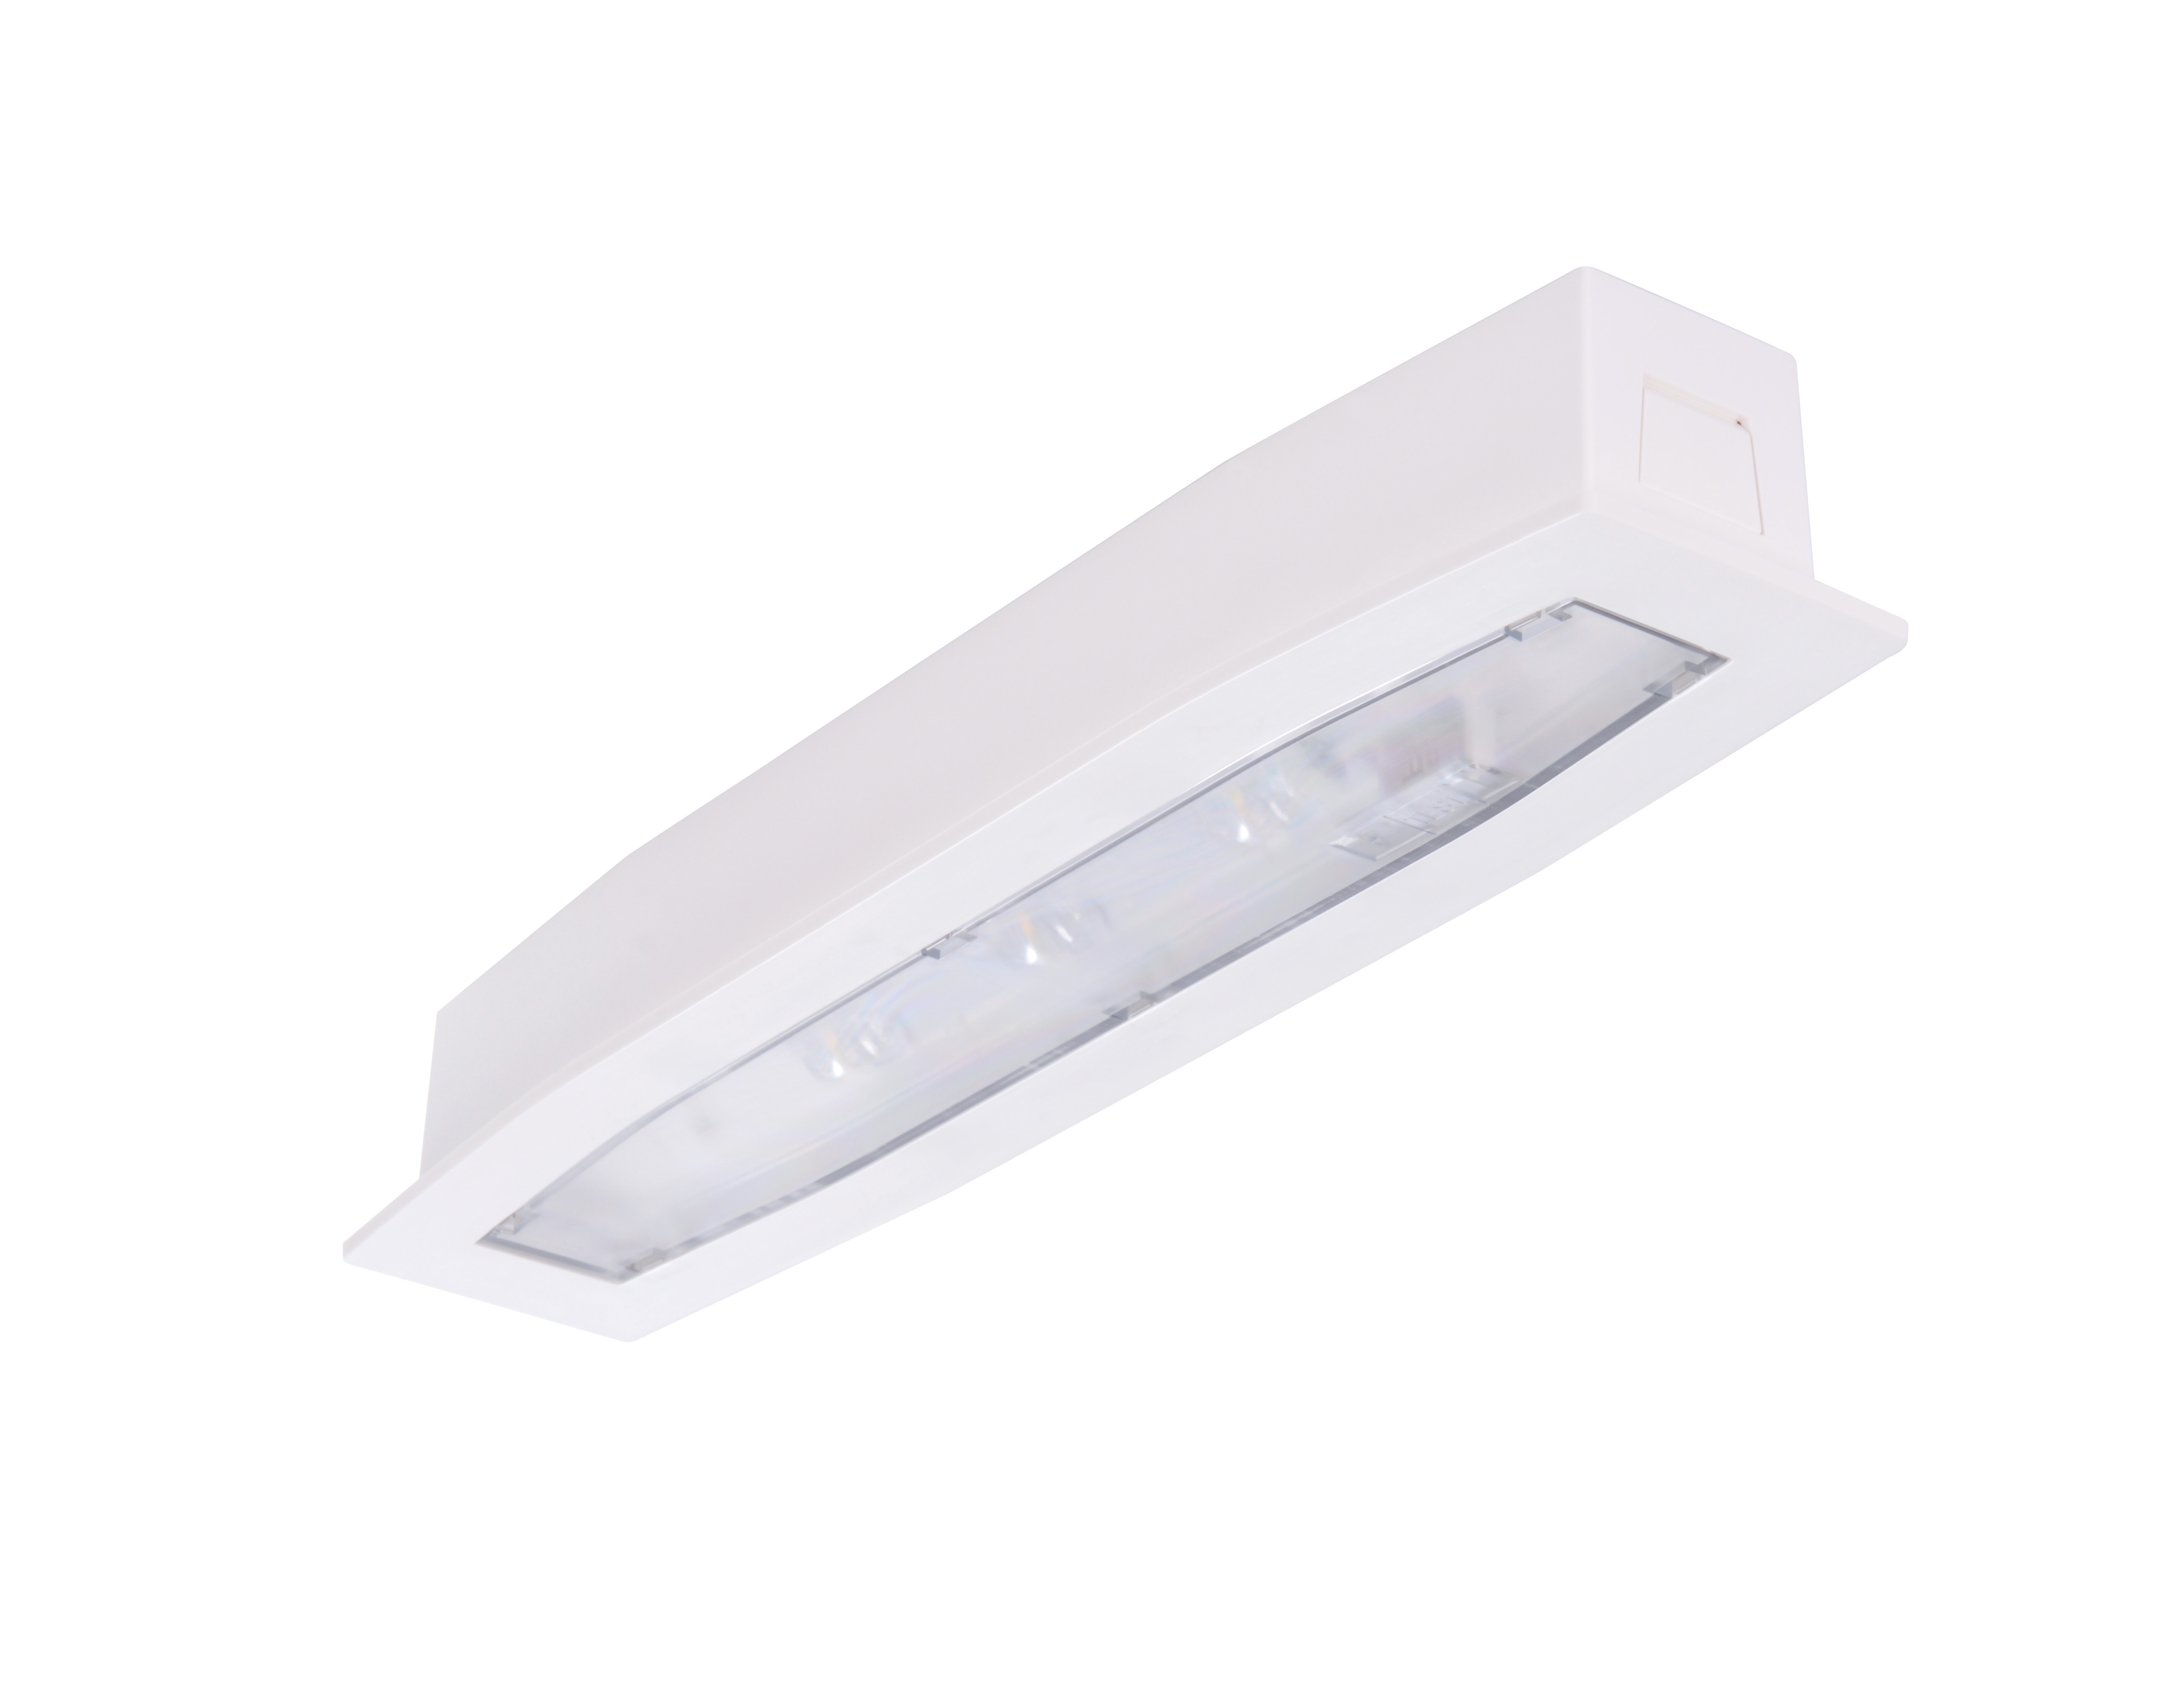 Lampa antipanica led Intelight 94721   2h nementinut test automat3